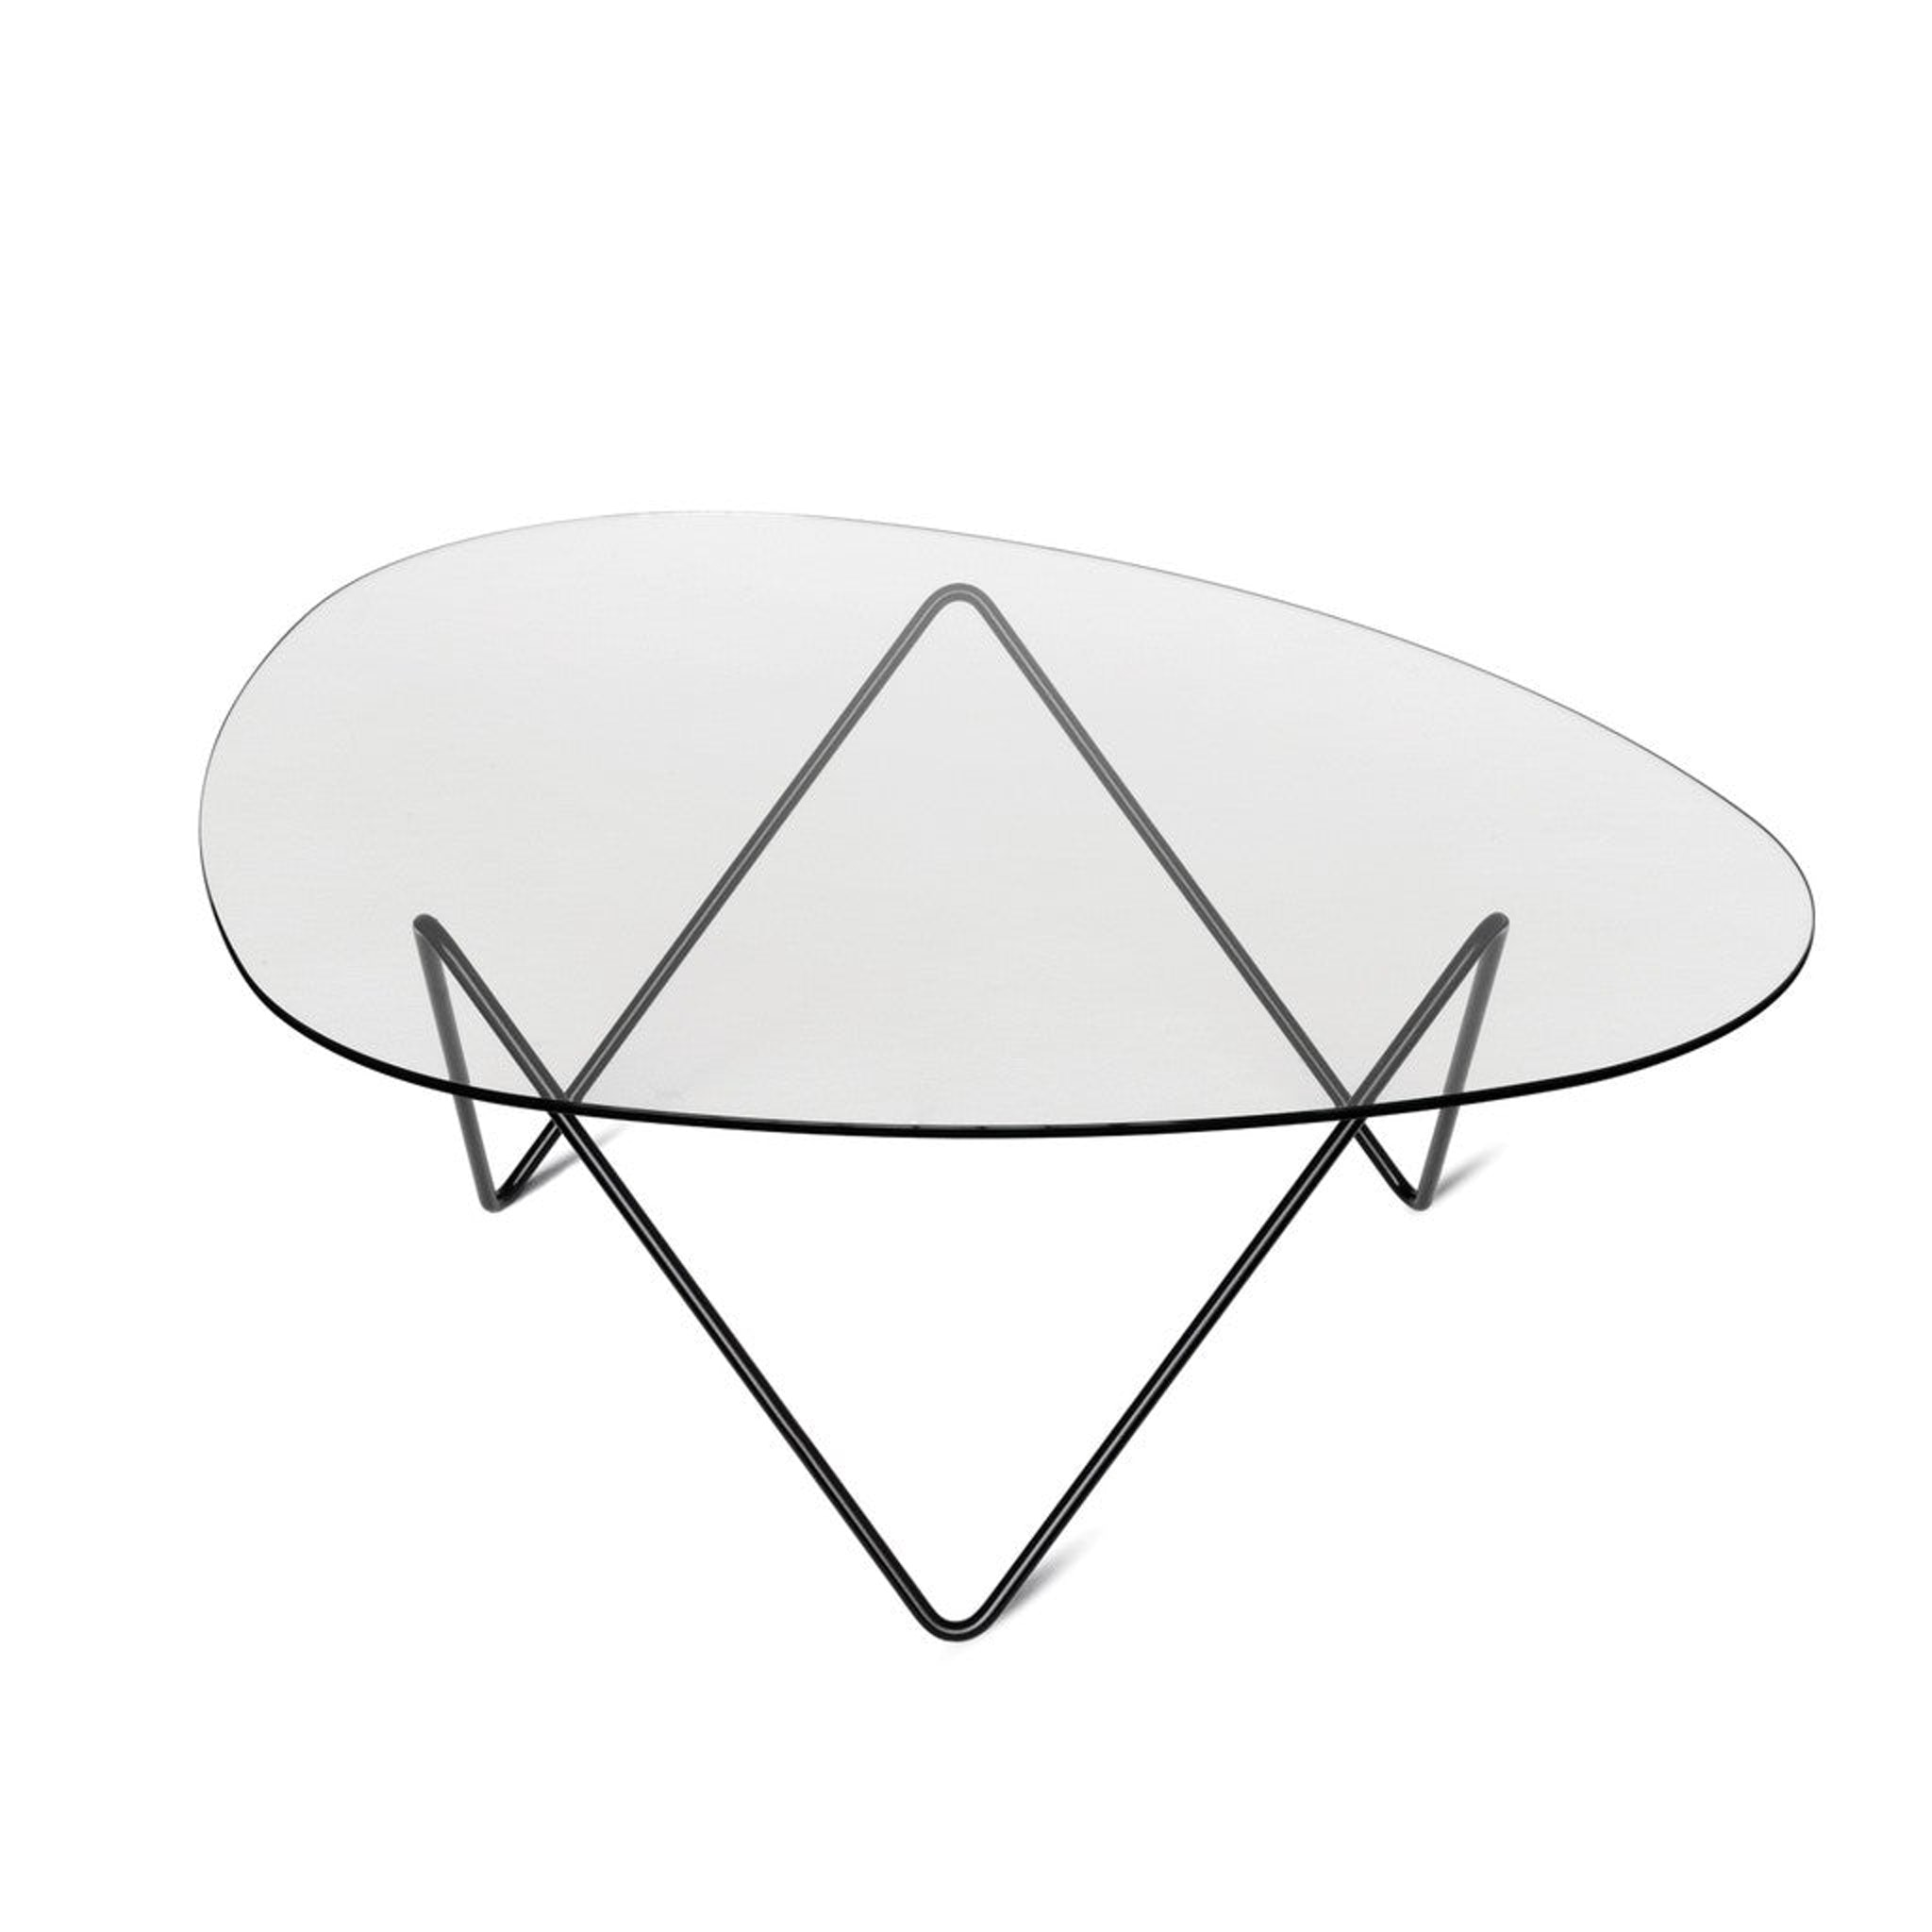 Pedrera Coffee Table by Barba Corsini & Ruiz Millet